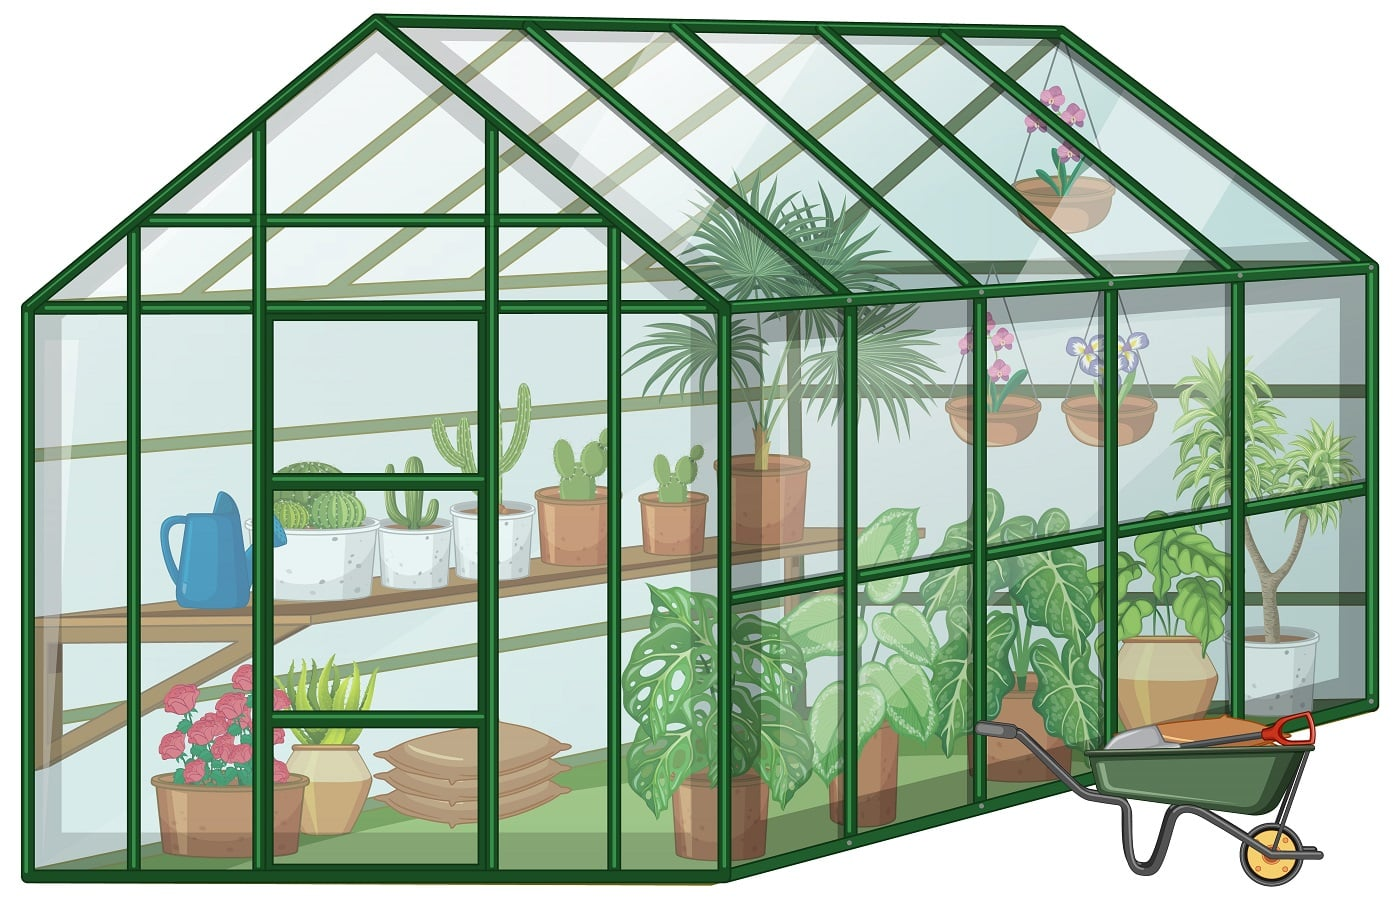 Many Plants in Greenhouse with glass wall and wheelbarrow on white background illustration